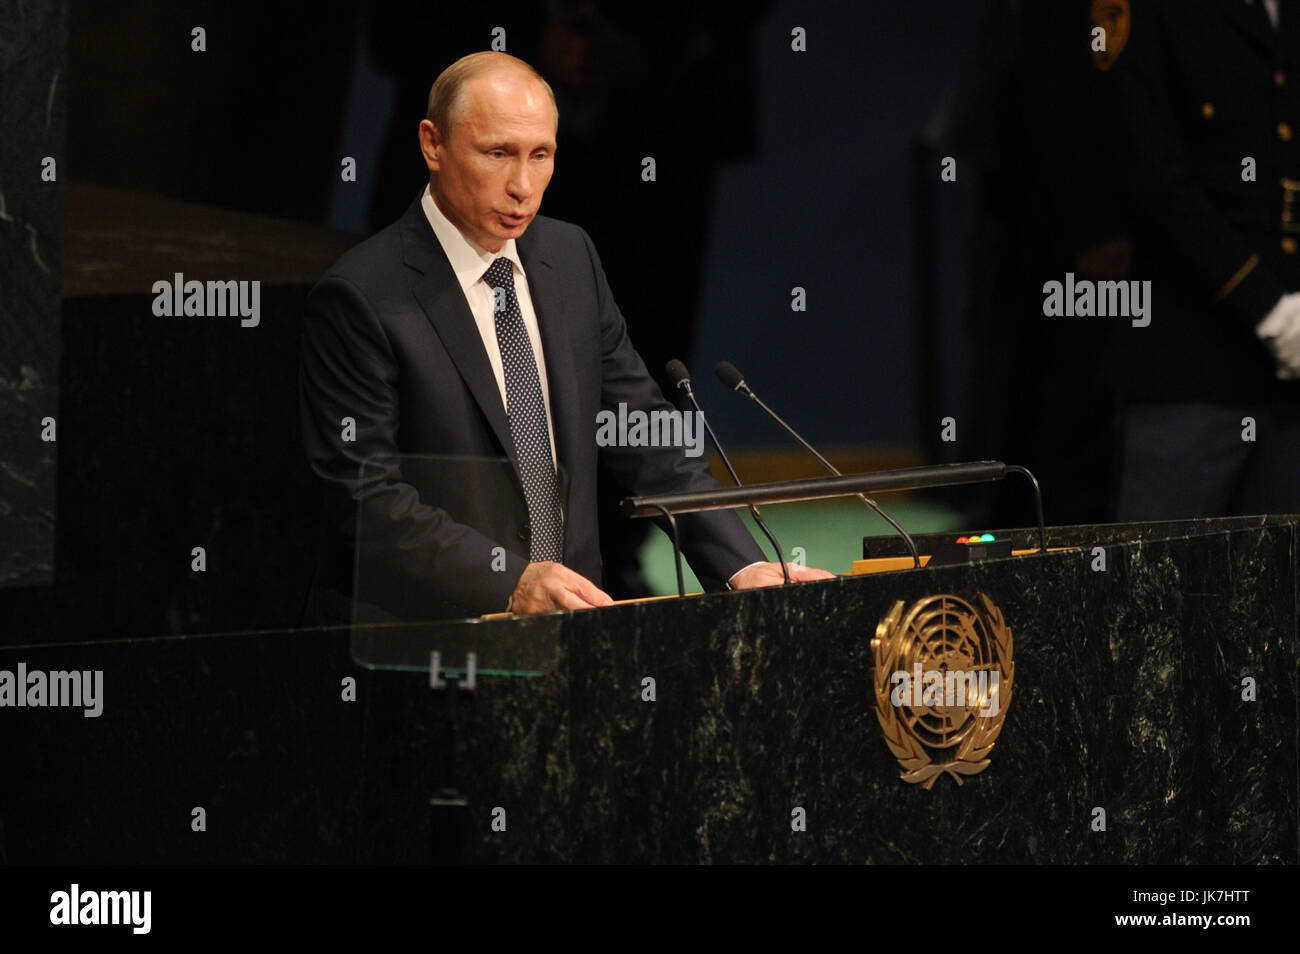 NEW YORK, NY - SEPTEMBER 28: Russian President Vladimir Putin addresses the 70th session of the United Nations General Stock Photo